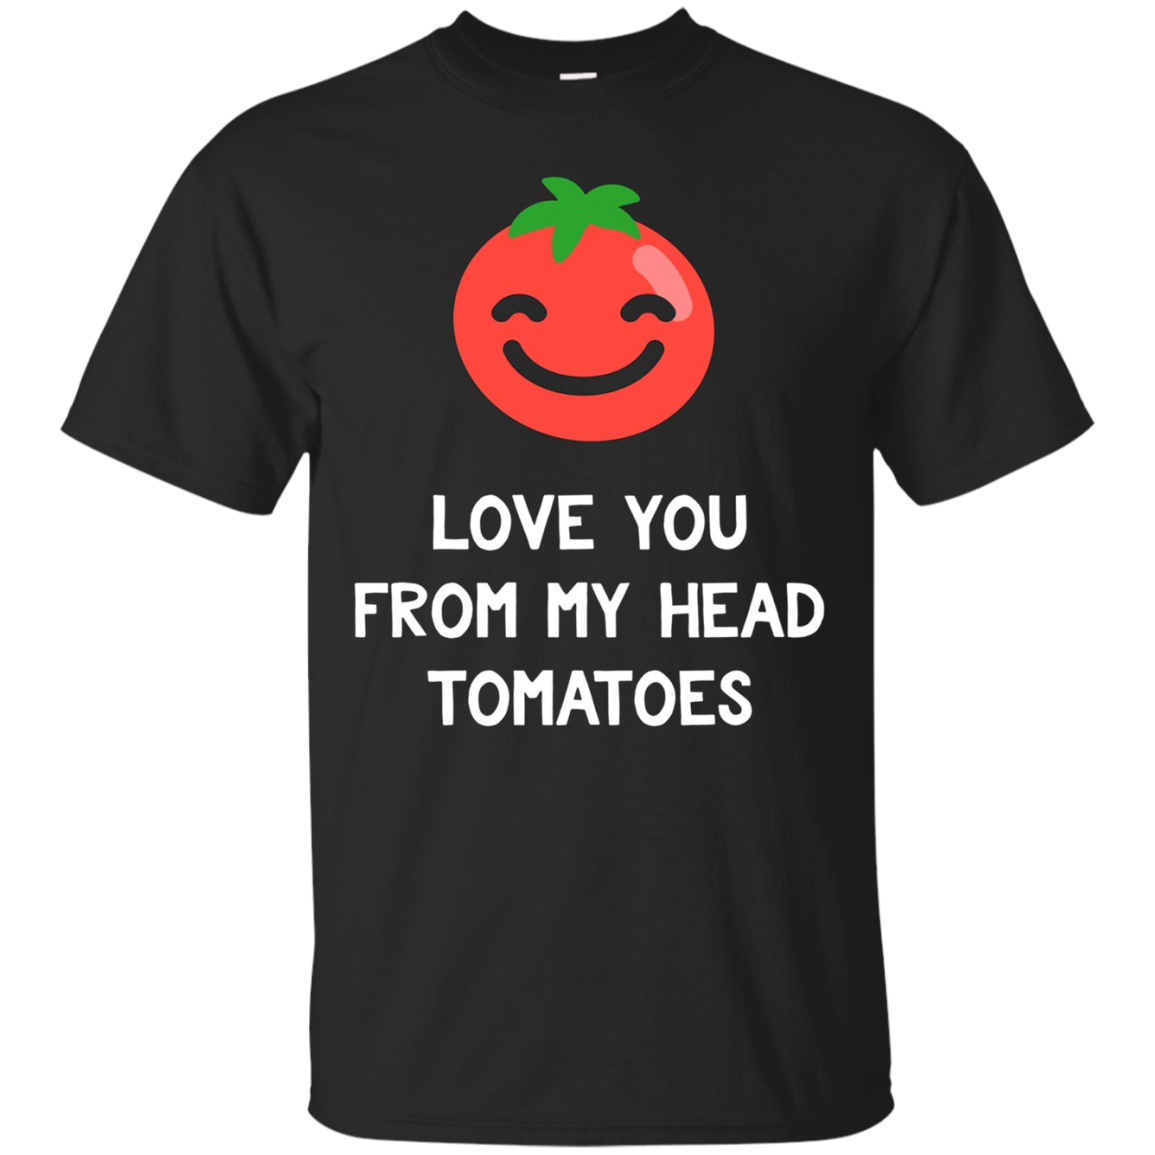 Funny Tomato Shirt From My Head Tomatoes Vegetable T-Shirt